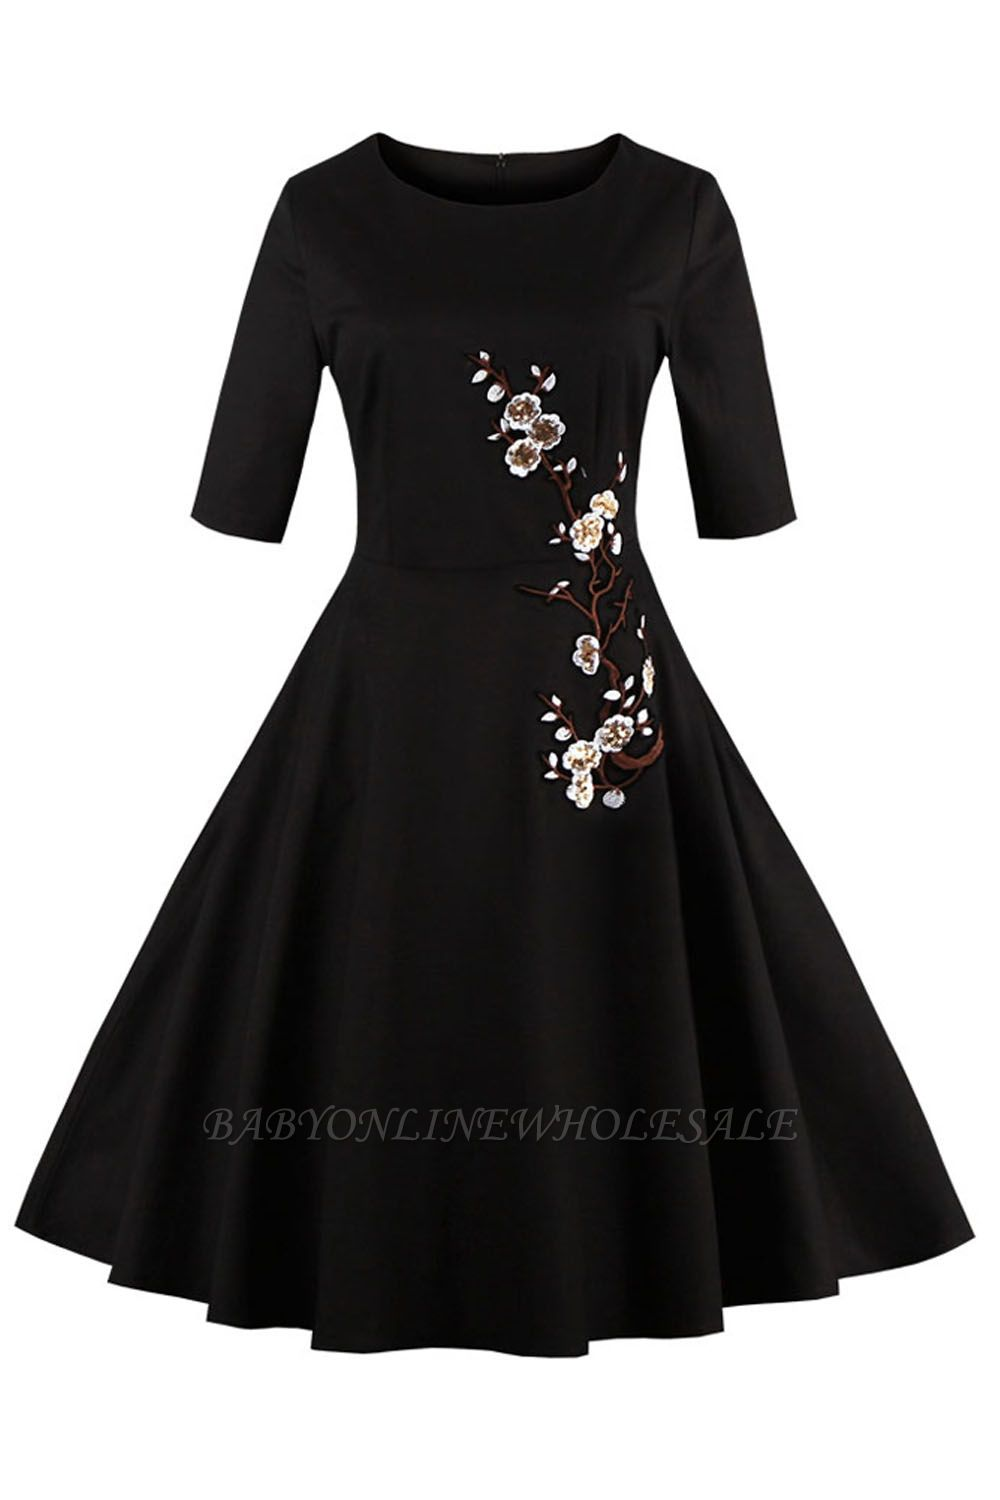 1/2 Sleeve Black Dress with Embroidered Flowers | Clearance sale and free shipping